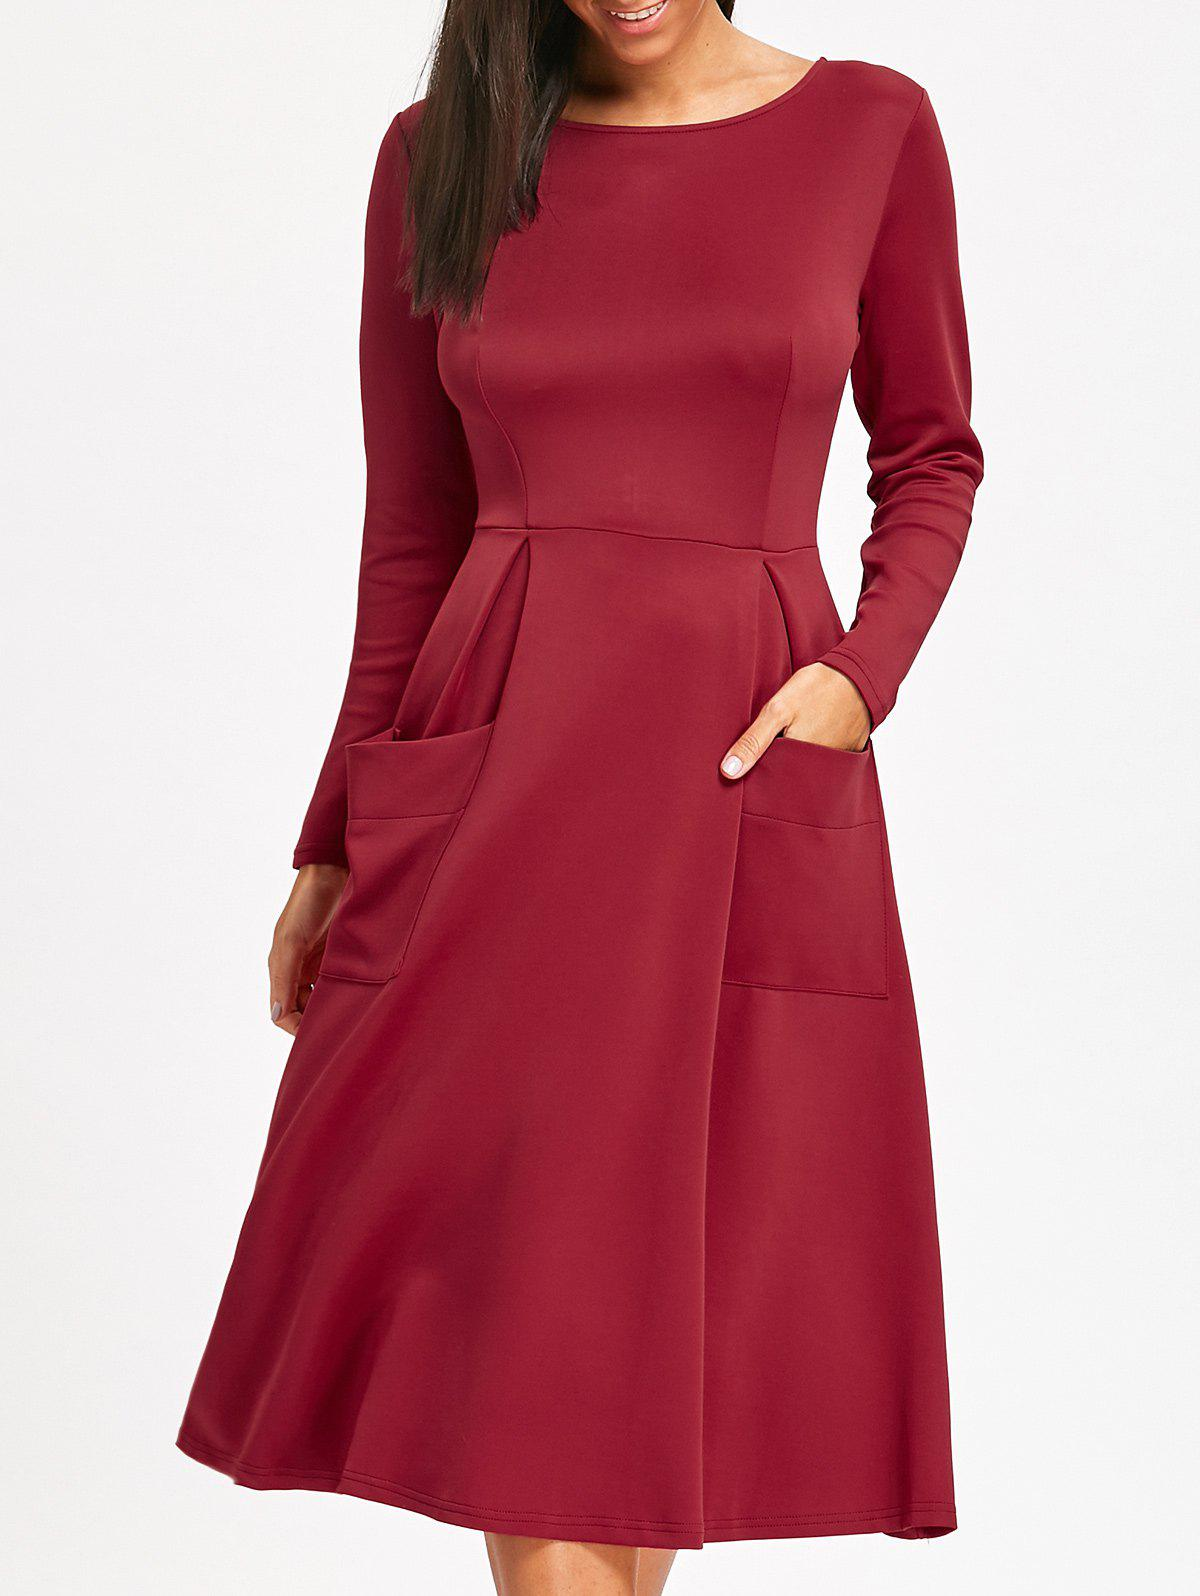 Long Sleeve Pockets A Line Midi DressWOMEN<br><br>Size: M; Color: WINE RED; Style: Casual; Material: Polyester; Silhouette: A-Line; Dresses Length: Mid-Calf; Neckline: Jewel Neck; Sleeve Length: Long Sleeves; Embellishment: Pockets; Pattern Type: Solid Color; With Belt: No; Season: Fall,Spring; Weight: 0.5450kg; Package Contents: 1 x Dress; Occasion: Casual;